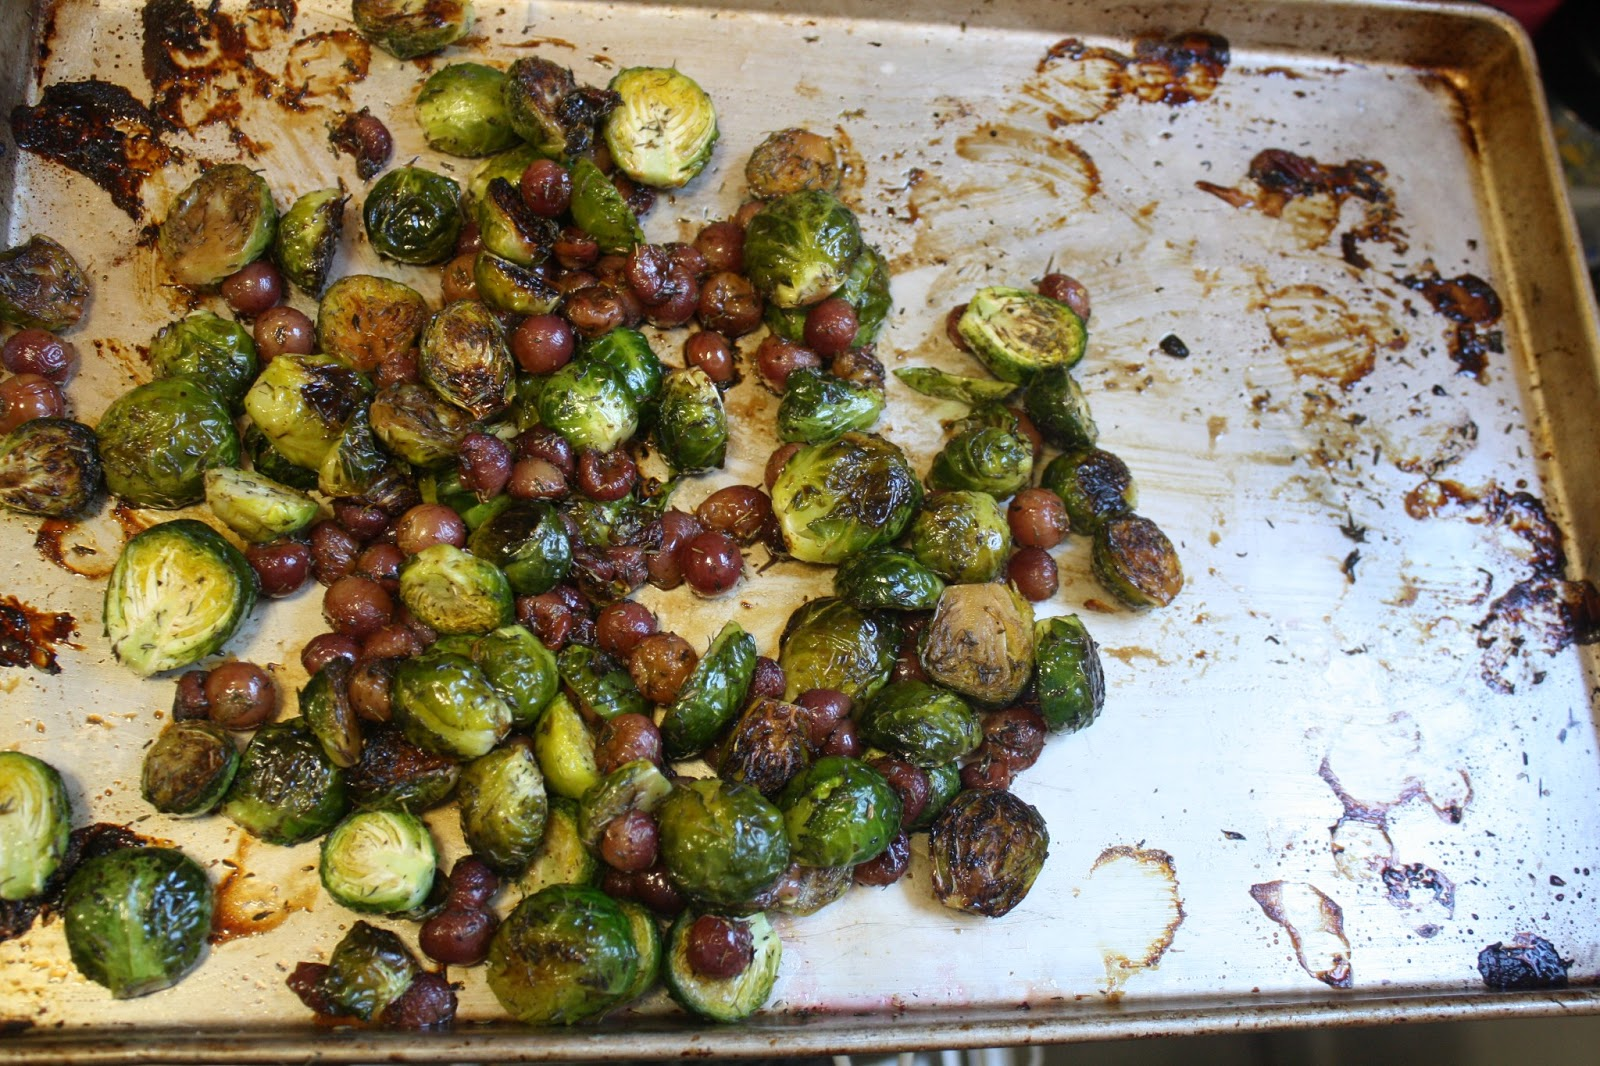 and pepper tossed brussels sprouts and grapes on a baking sheet